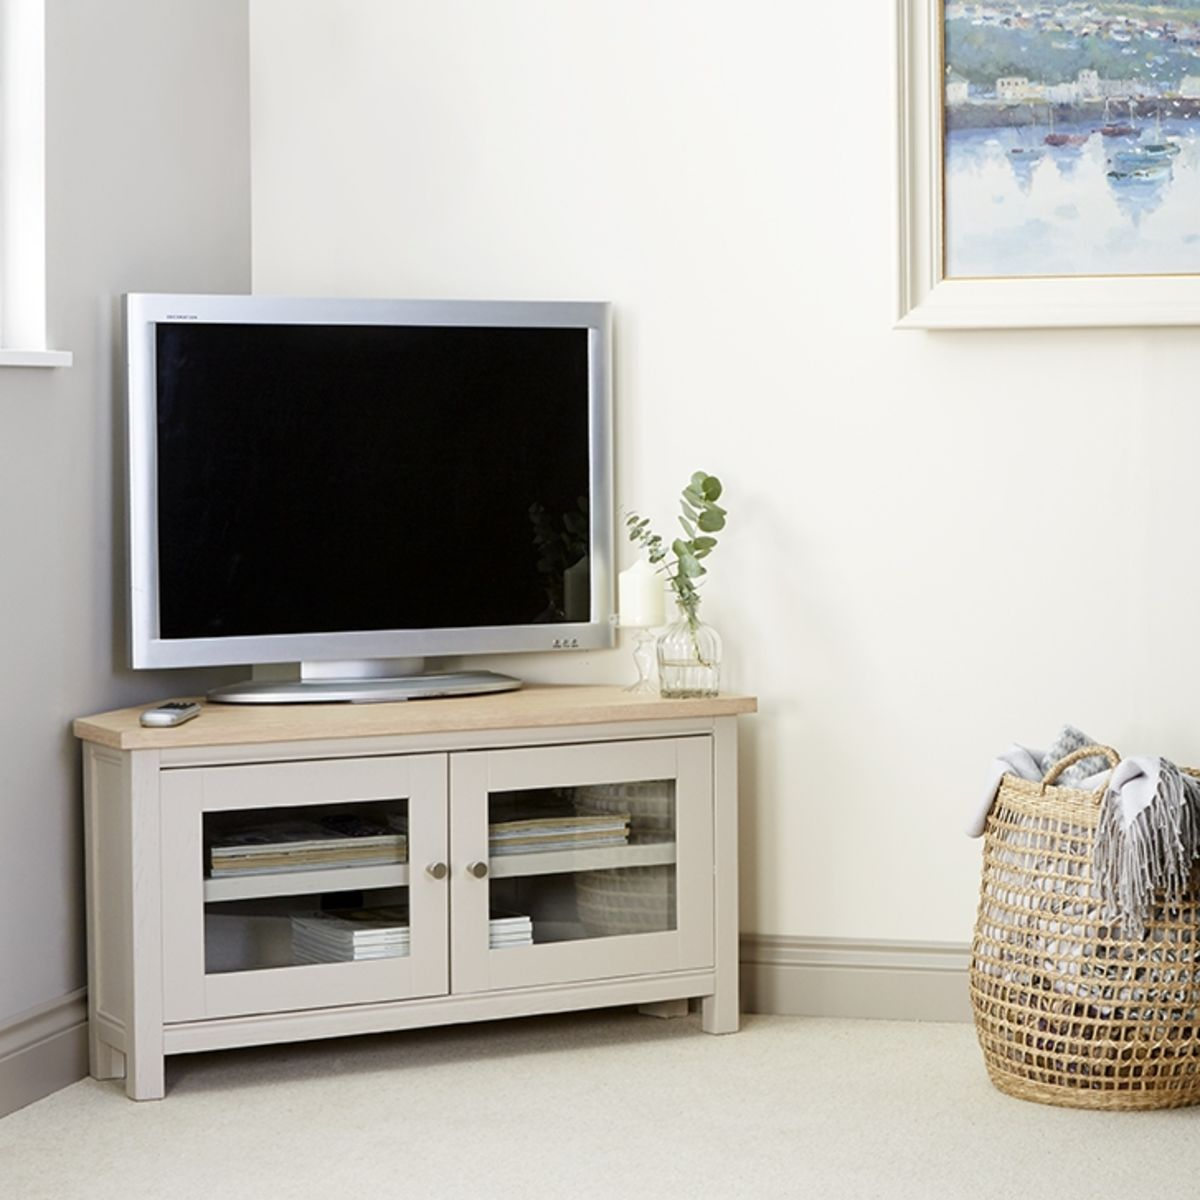 Rushbury Painted Corner TV Unit Was £449.00 Now £404.10